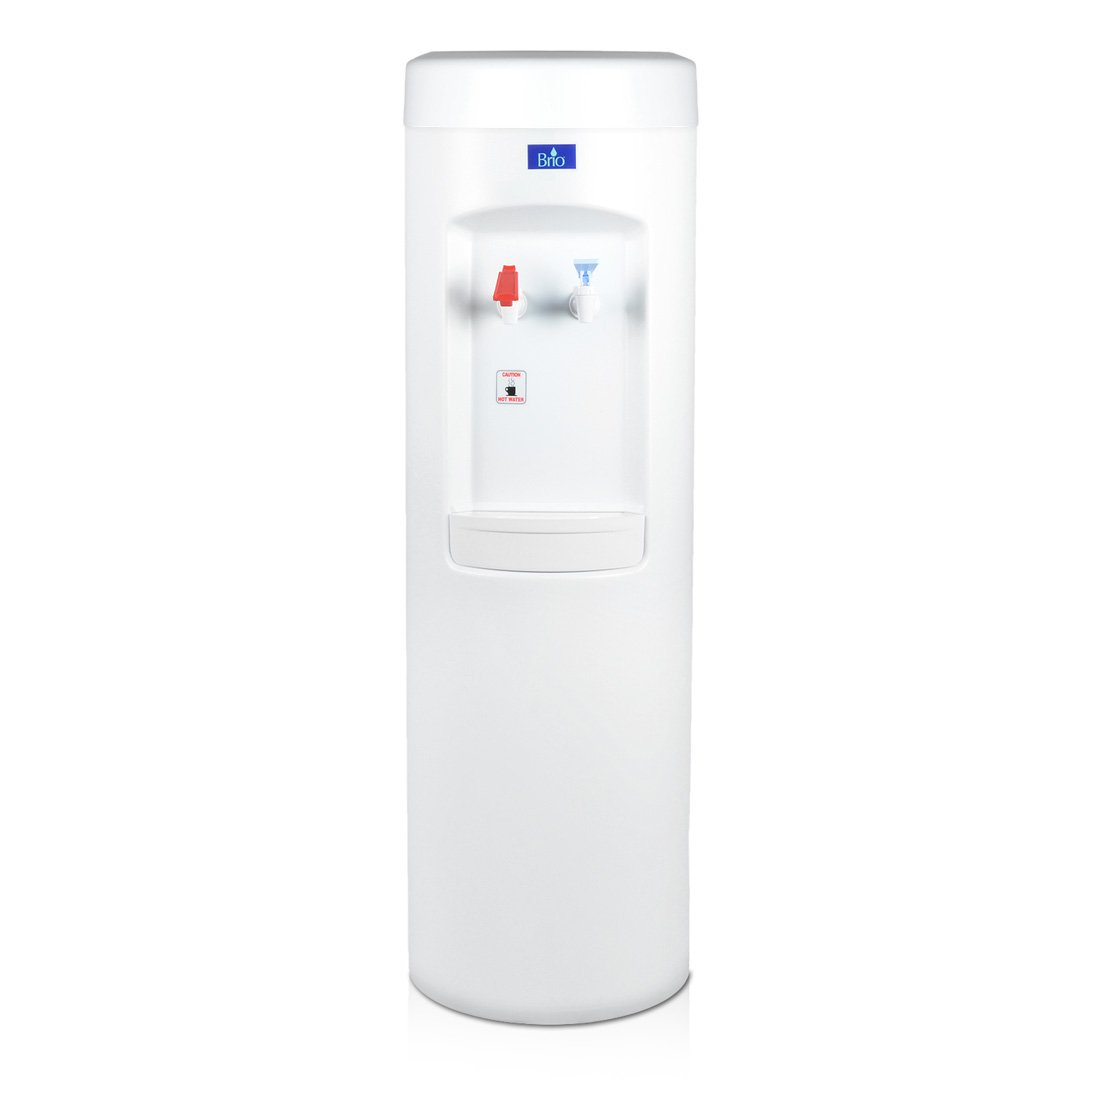 White BottleLess Water Cooler from BottleLess Direct (Model: BDX1-W). Dispenses Hot & Cold water. (Also available in black)